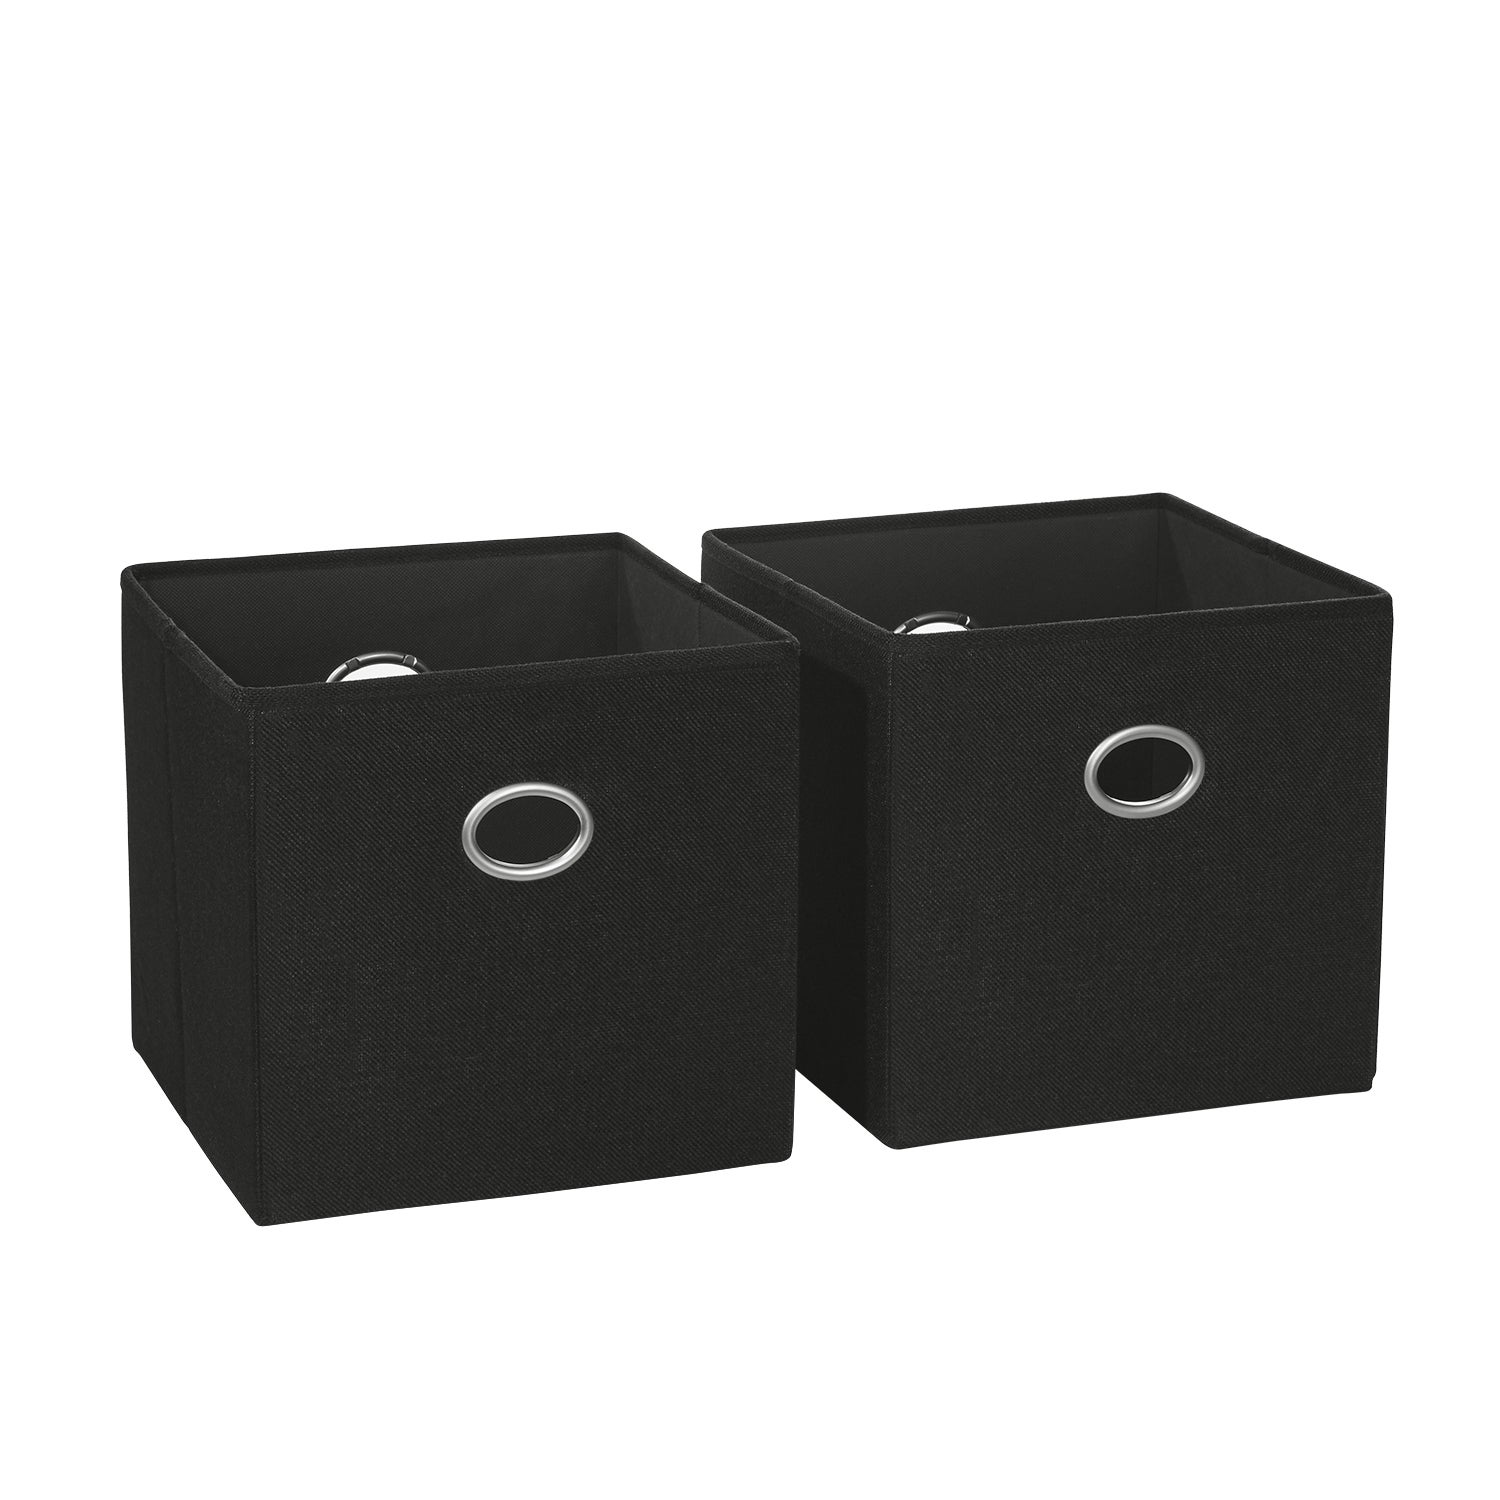 Shop 2 Pc Folding Storage Bin Set With Metal Ring Handles   N/A   Free  Shipping On Orders Over $45   Overstock.com   17663143